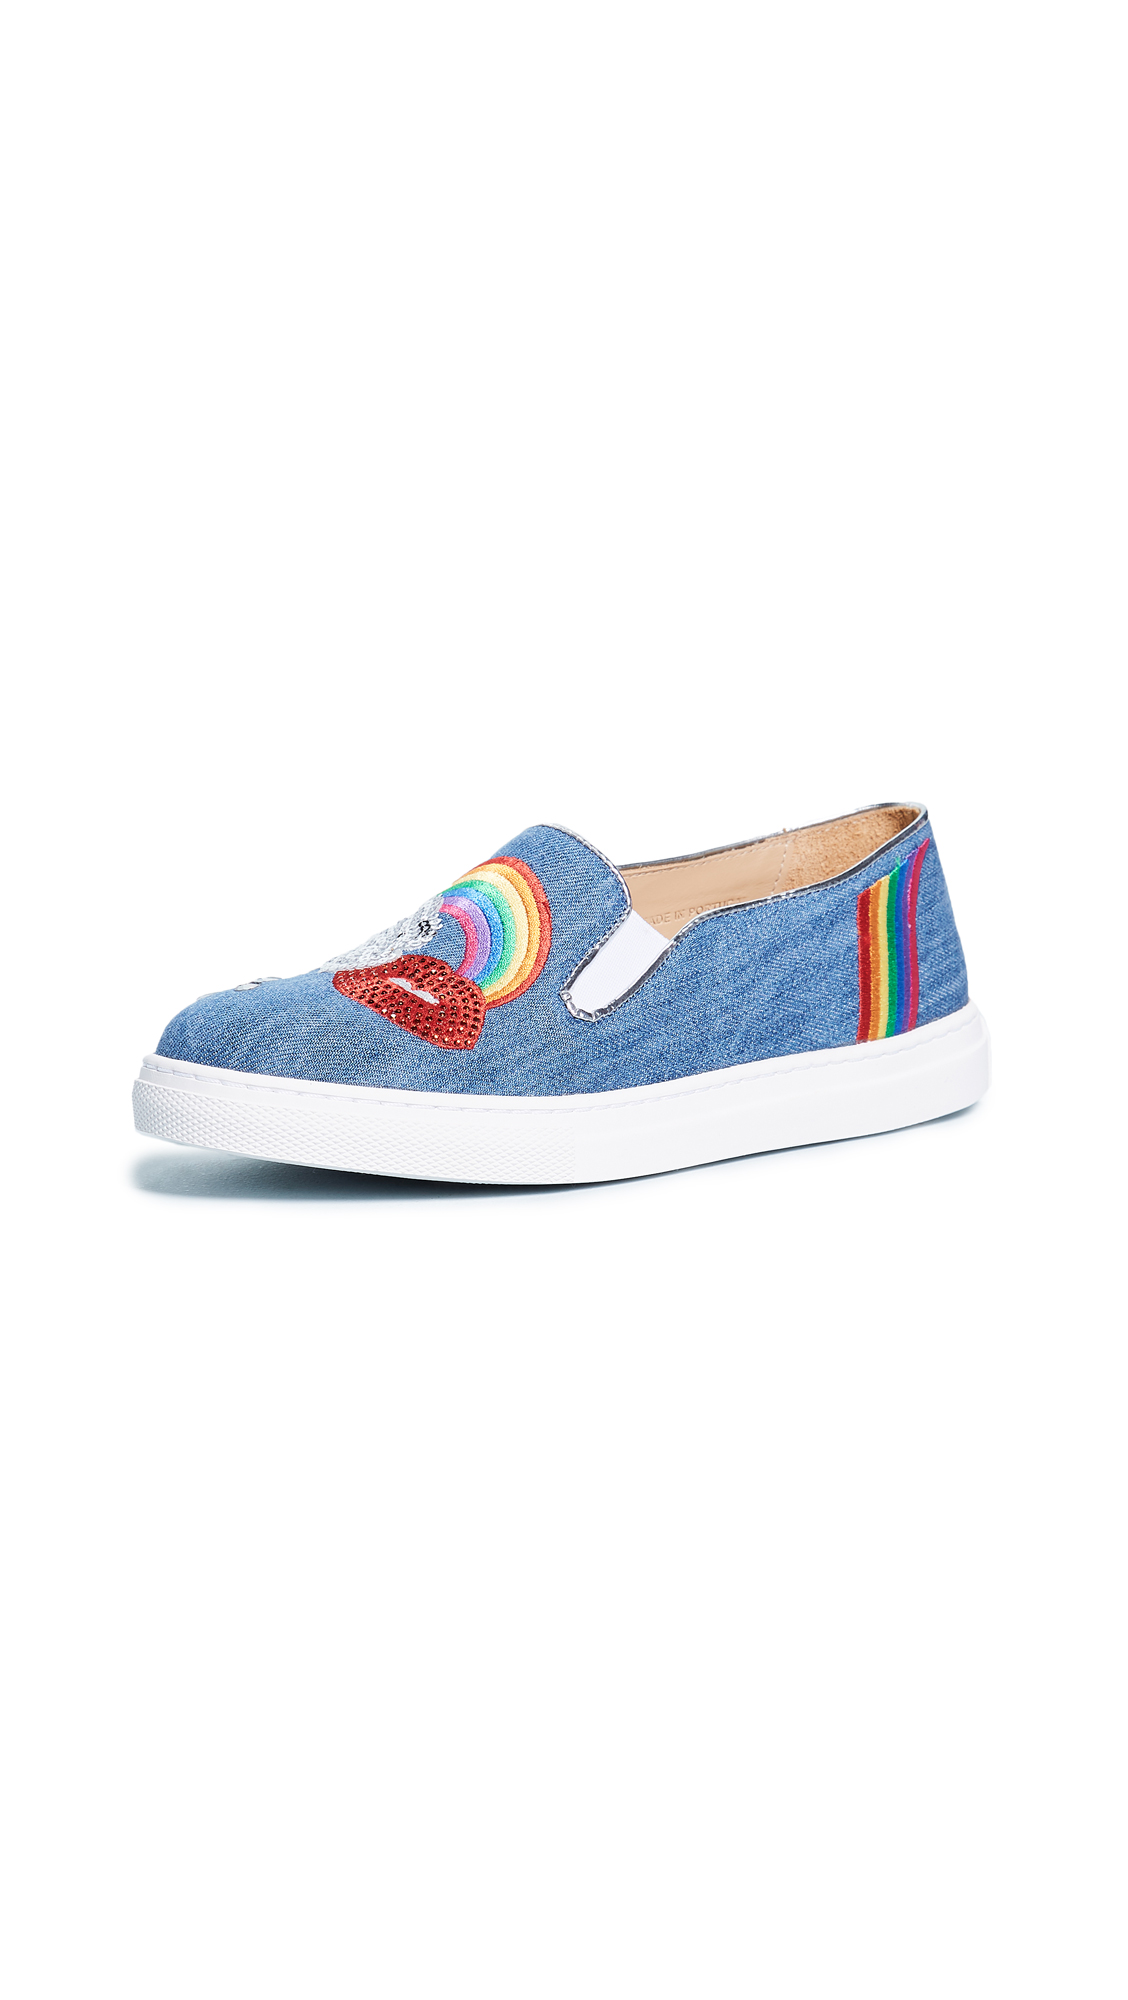 Charlotte Olympia Alex Slip On Sneakers - Light Denim